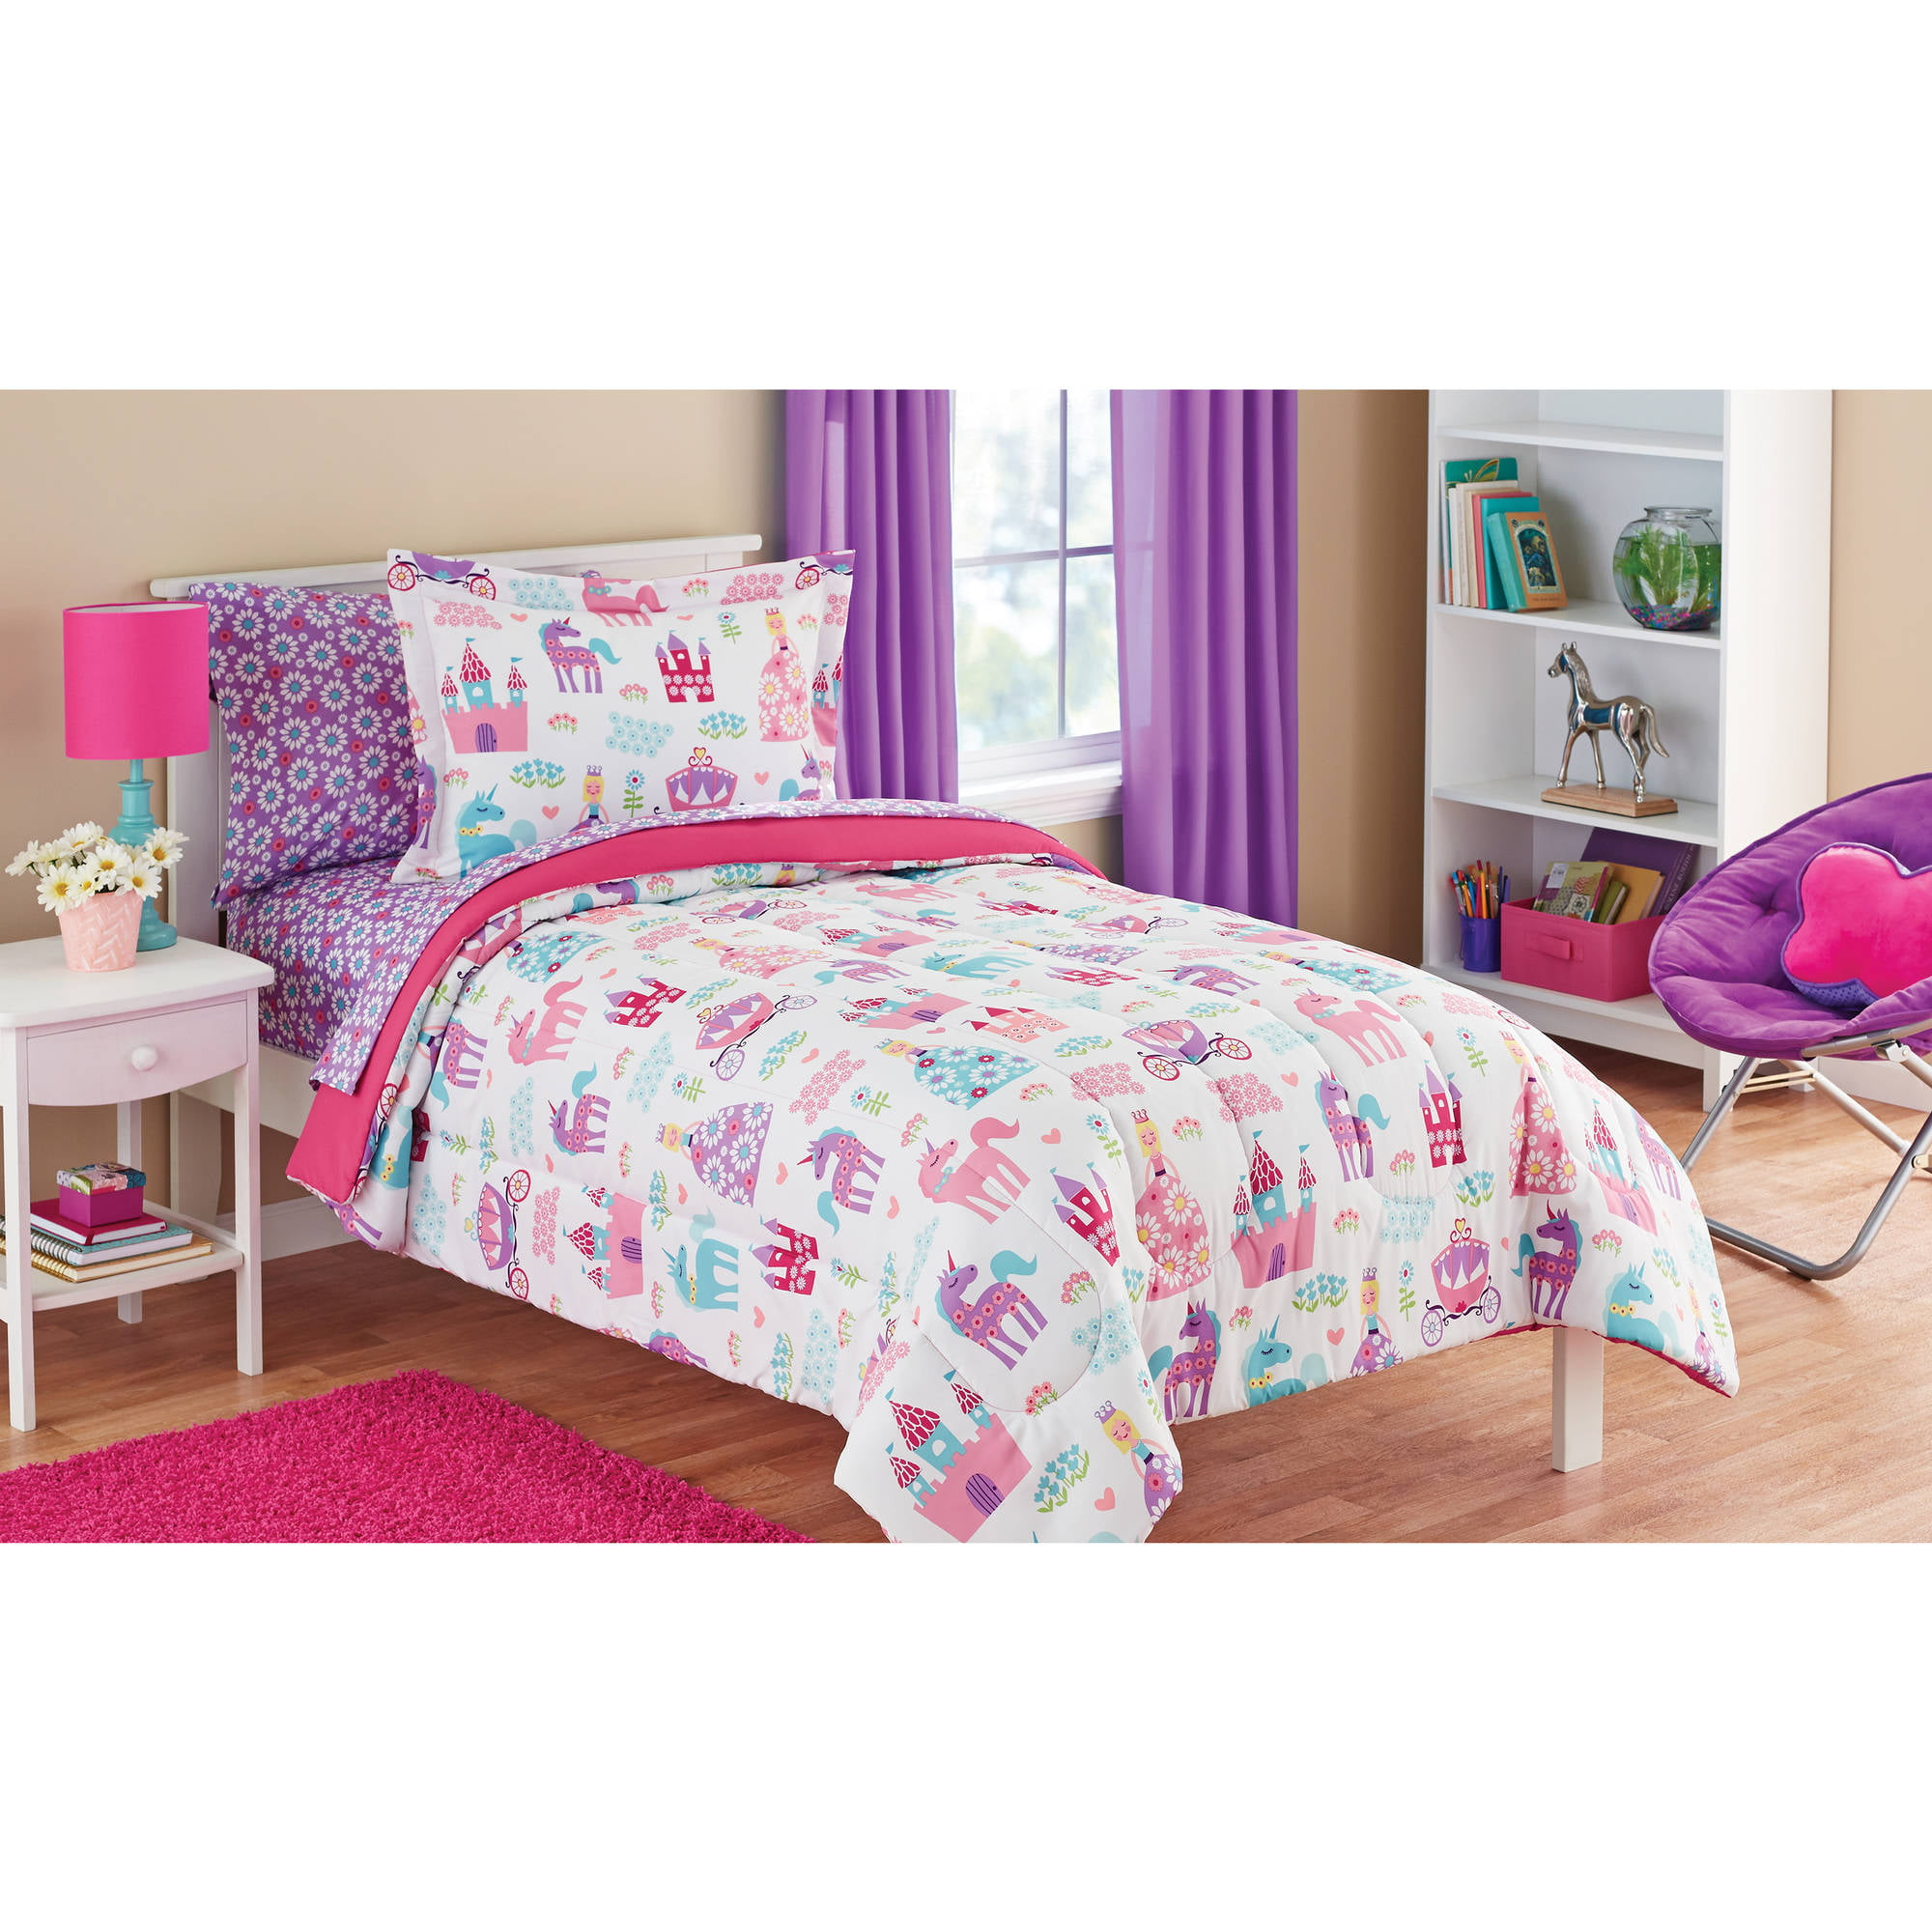 Mainstays Kids Pretty Princess Bed In A Bag Bedding Set Walmart Com